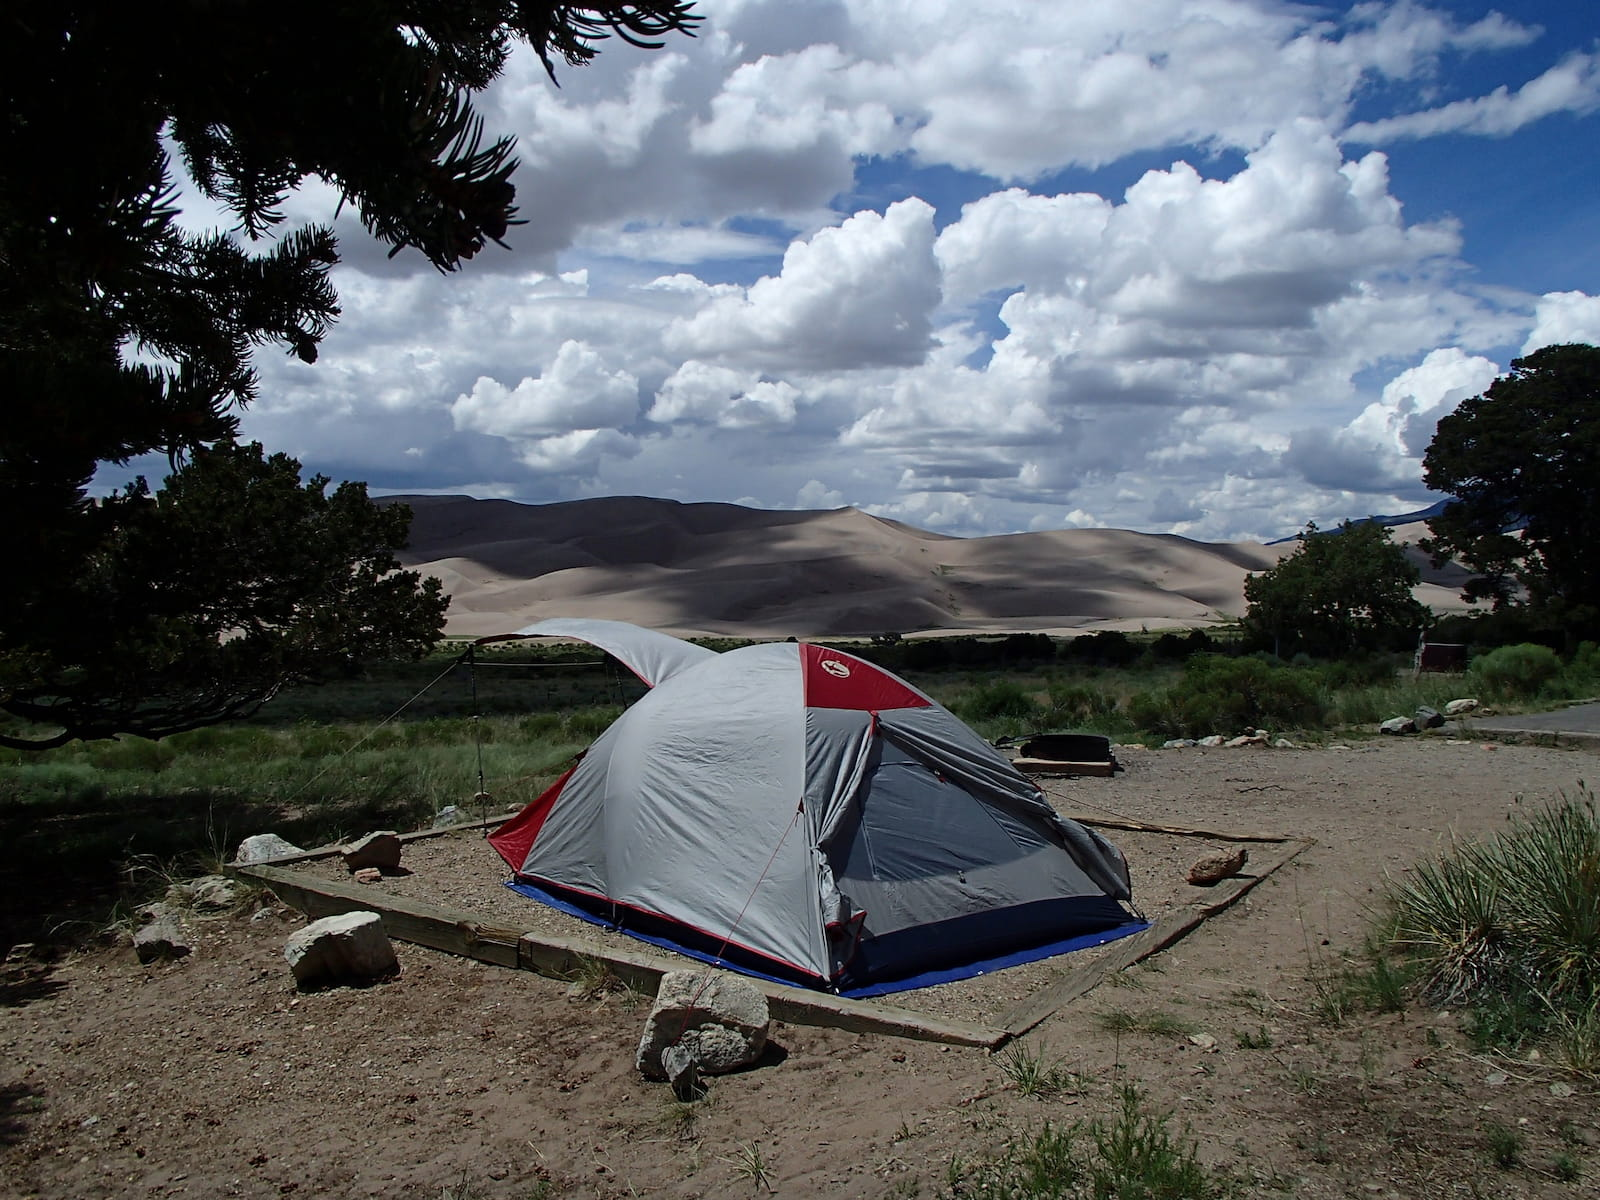 Tent at platform in foreground with rippled dunes of Great Sand Dunes National Park in Colorado in the background.